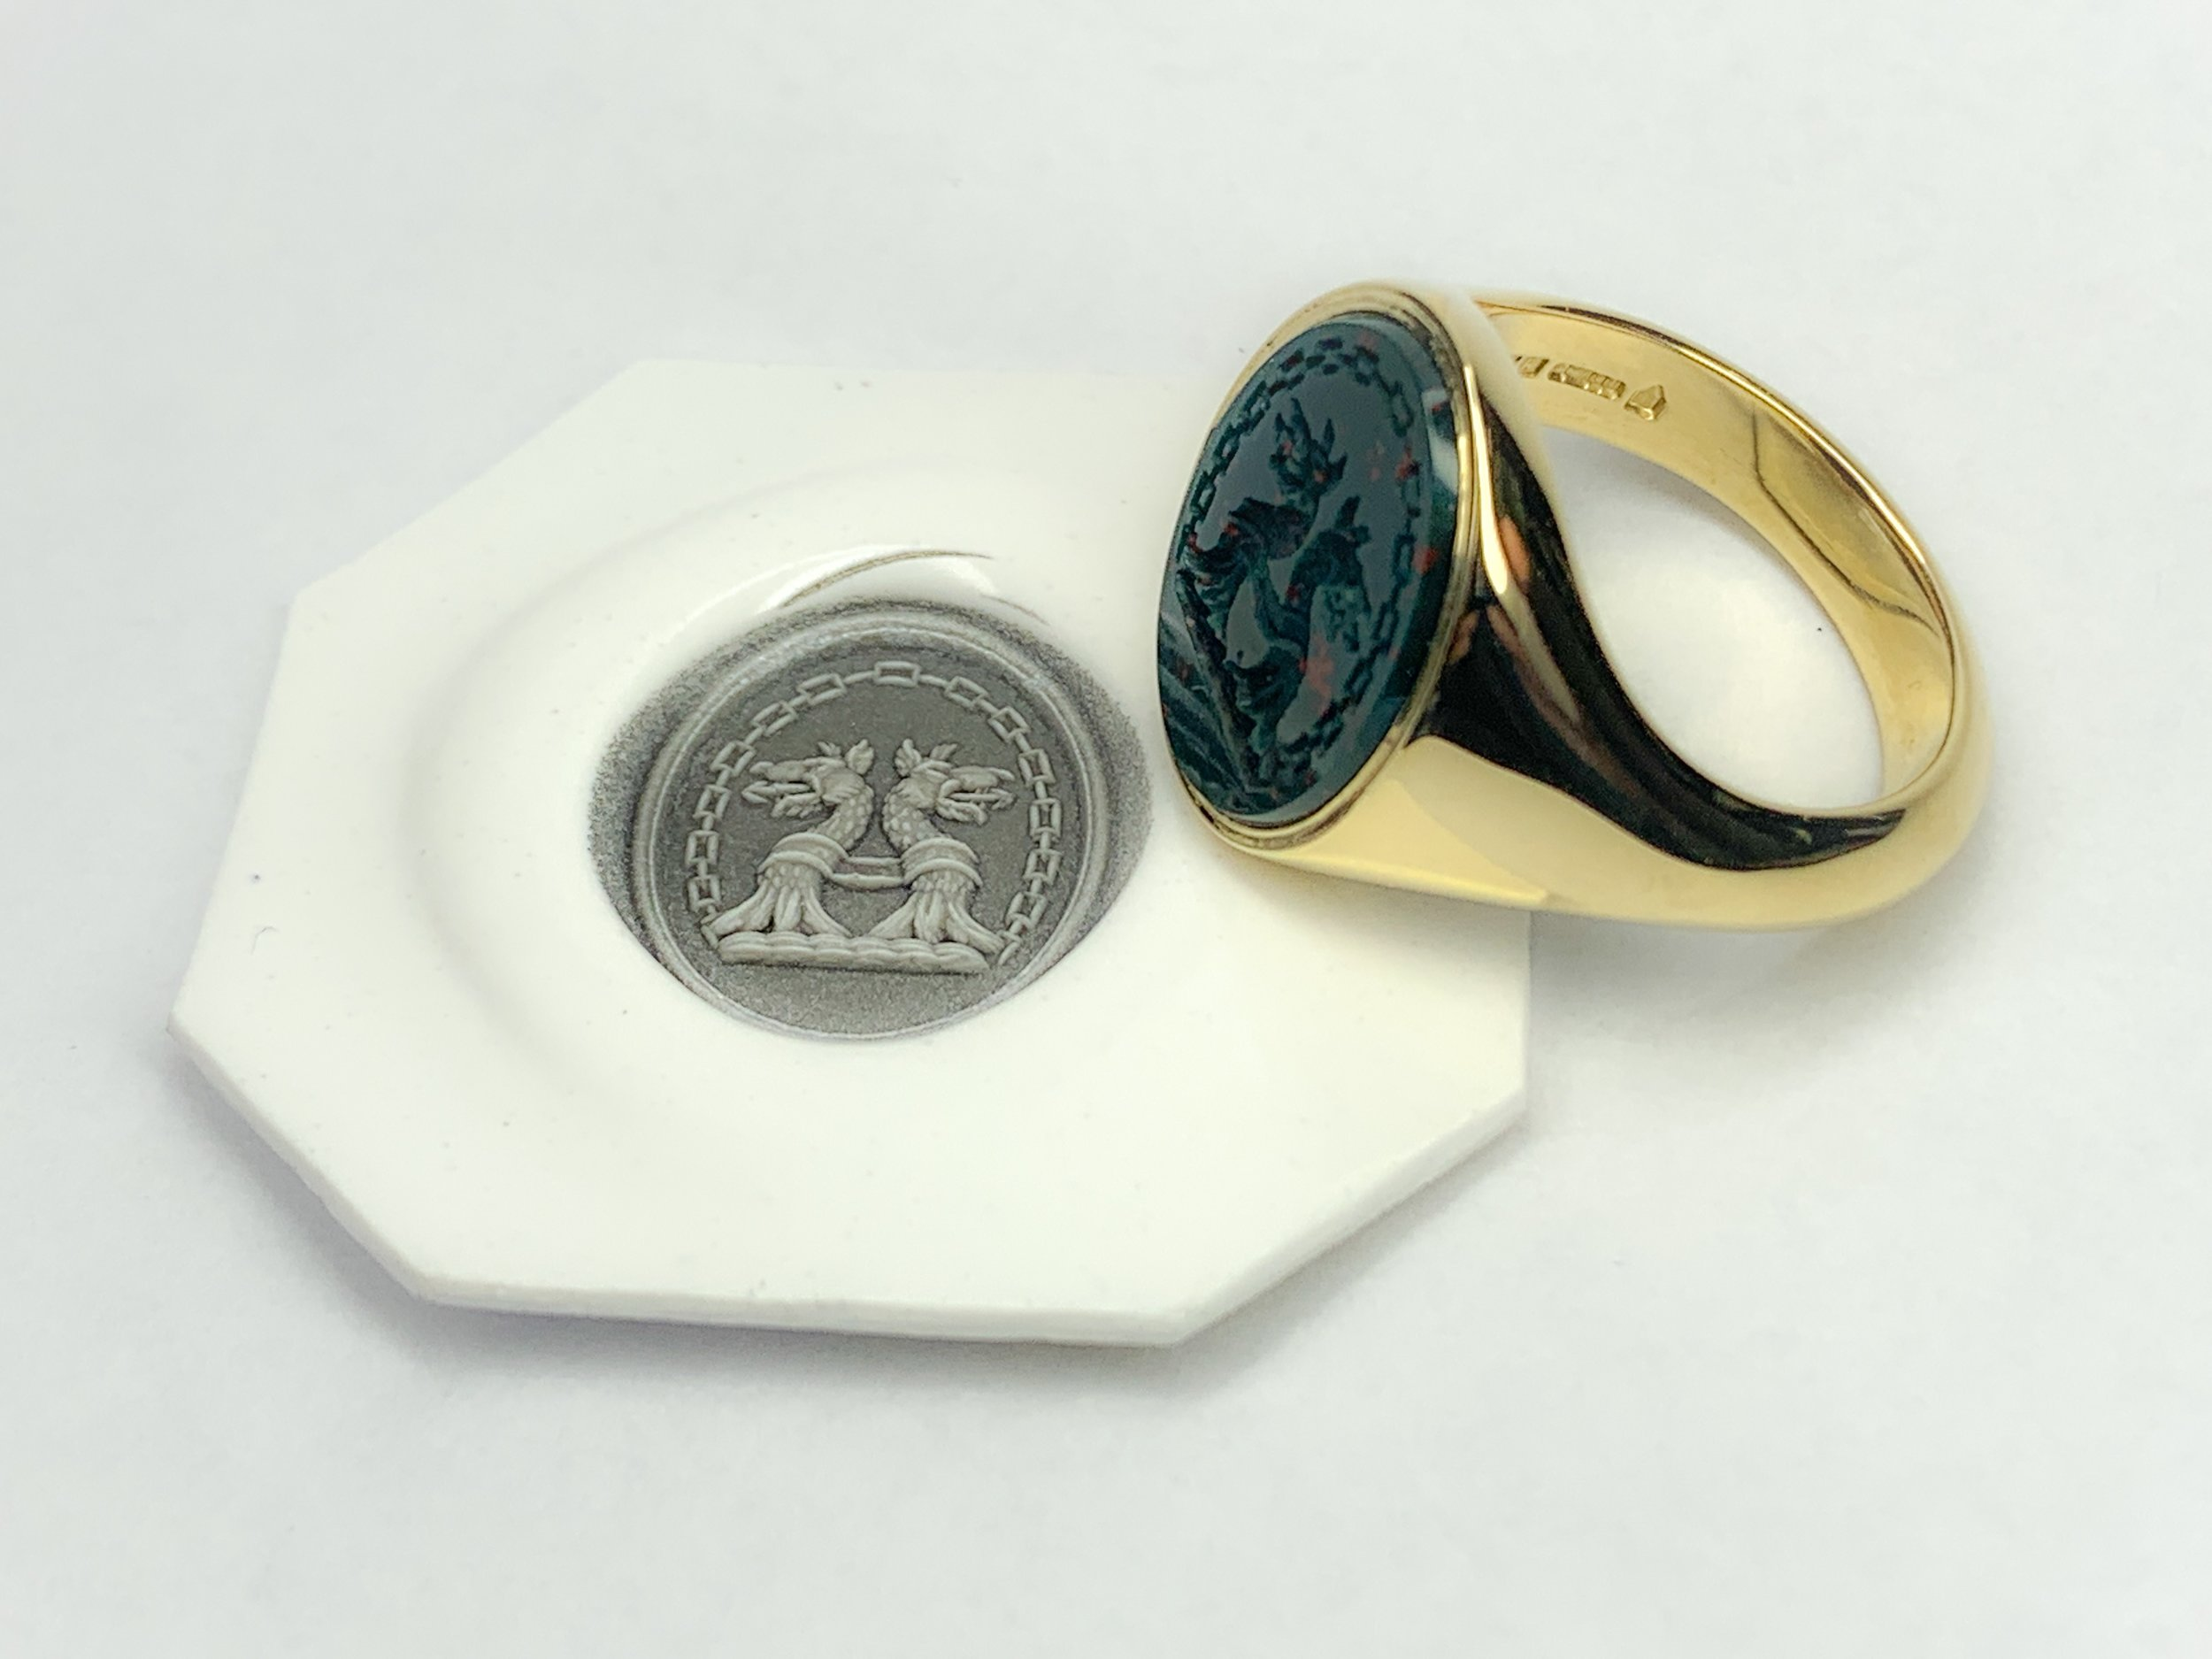 A bespoke 18ct and bloodstone seal engraved signet ring. Made in Chichester, England (engraving outsourced).